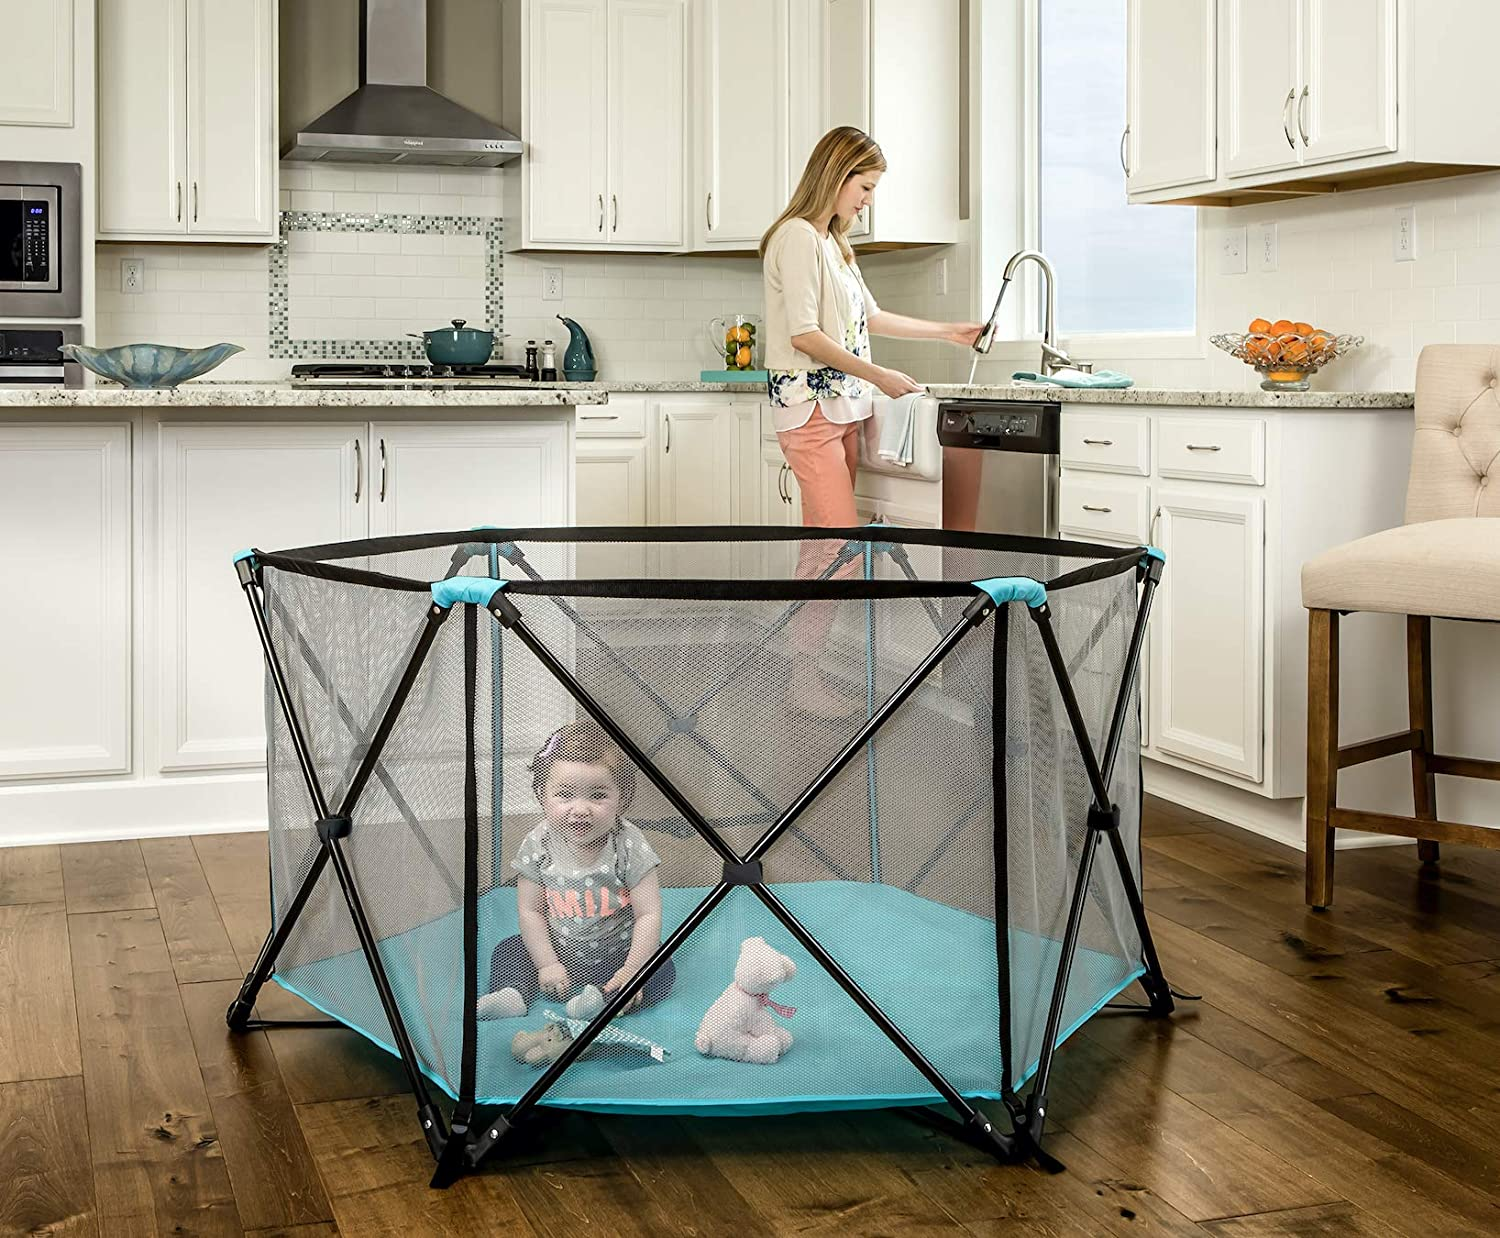 Regalo My Play Best Portable Play Yard Indoor and Outdoor